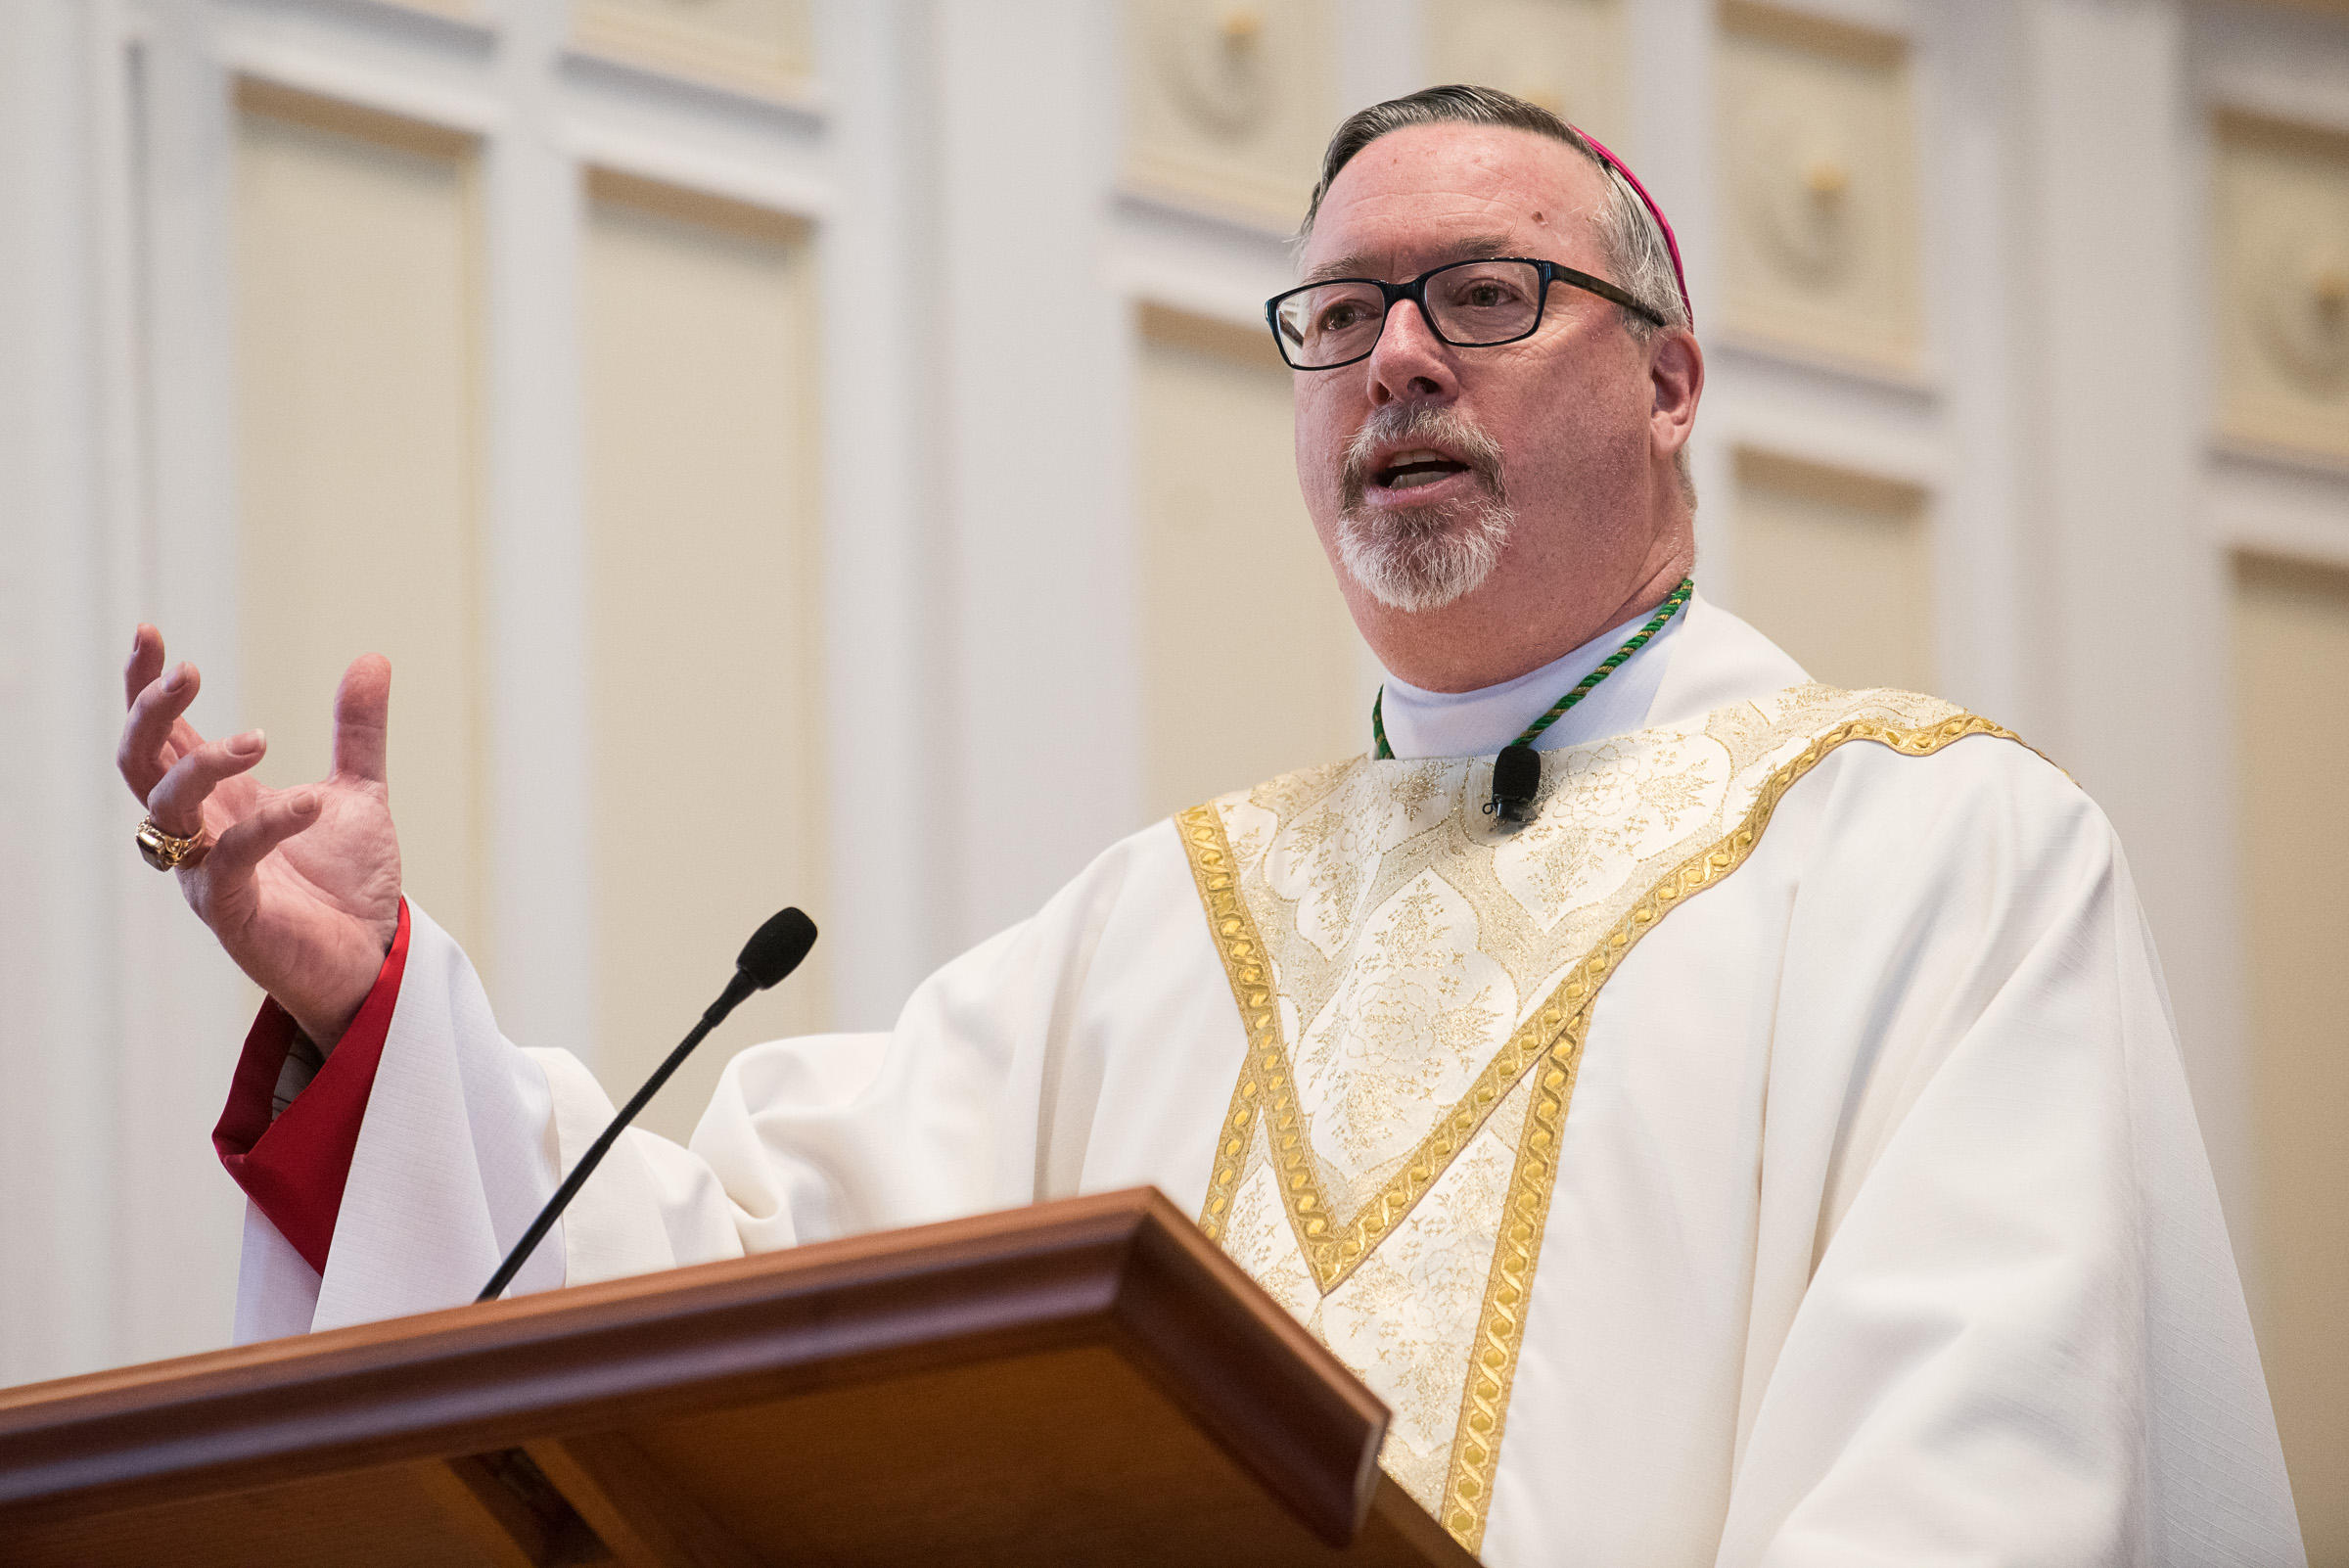 After traveling with the pope burlingtons bishop reflects the rev christopher coyne speaks at st joseph co cathedral in burlington on kristyandbryce Image collections